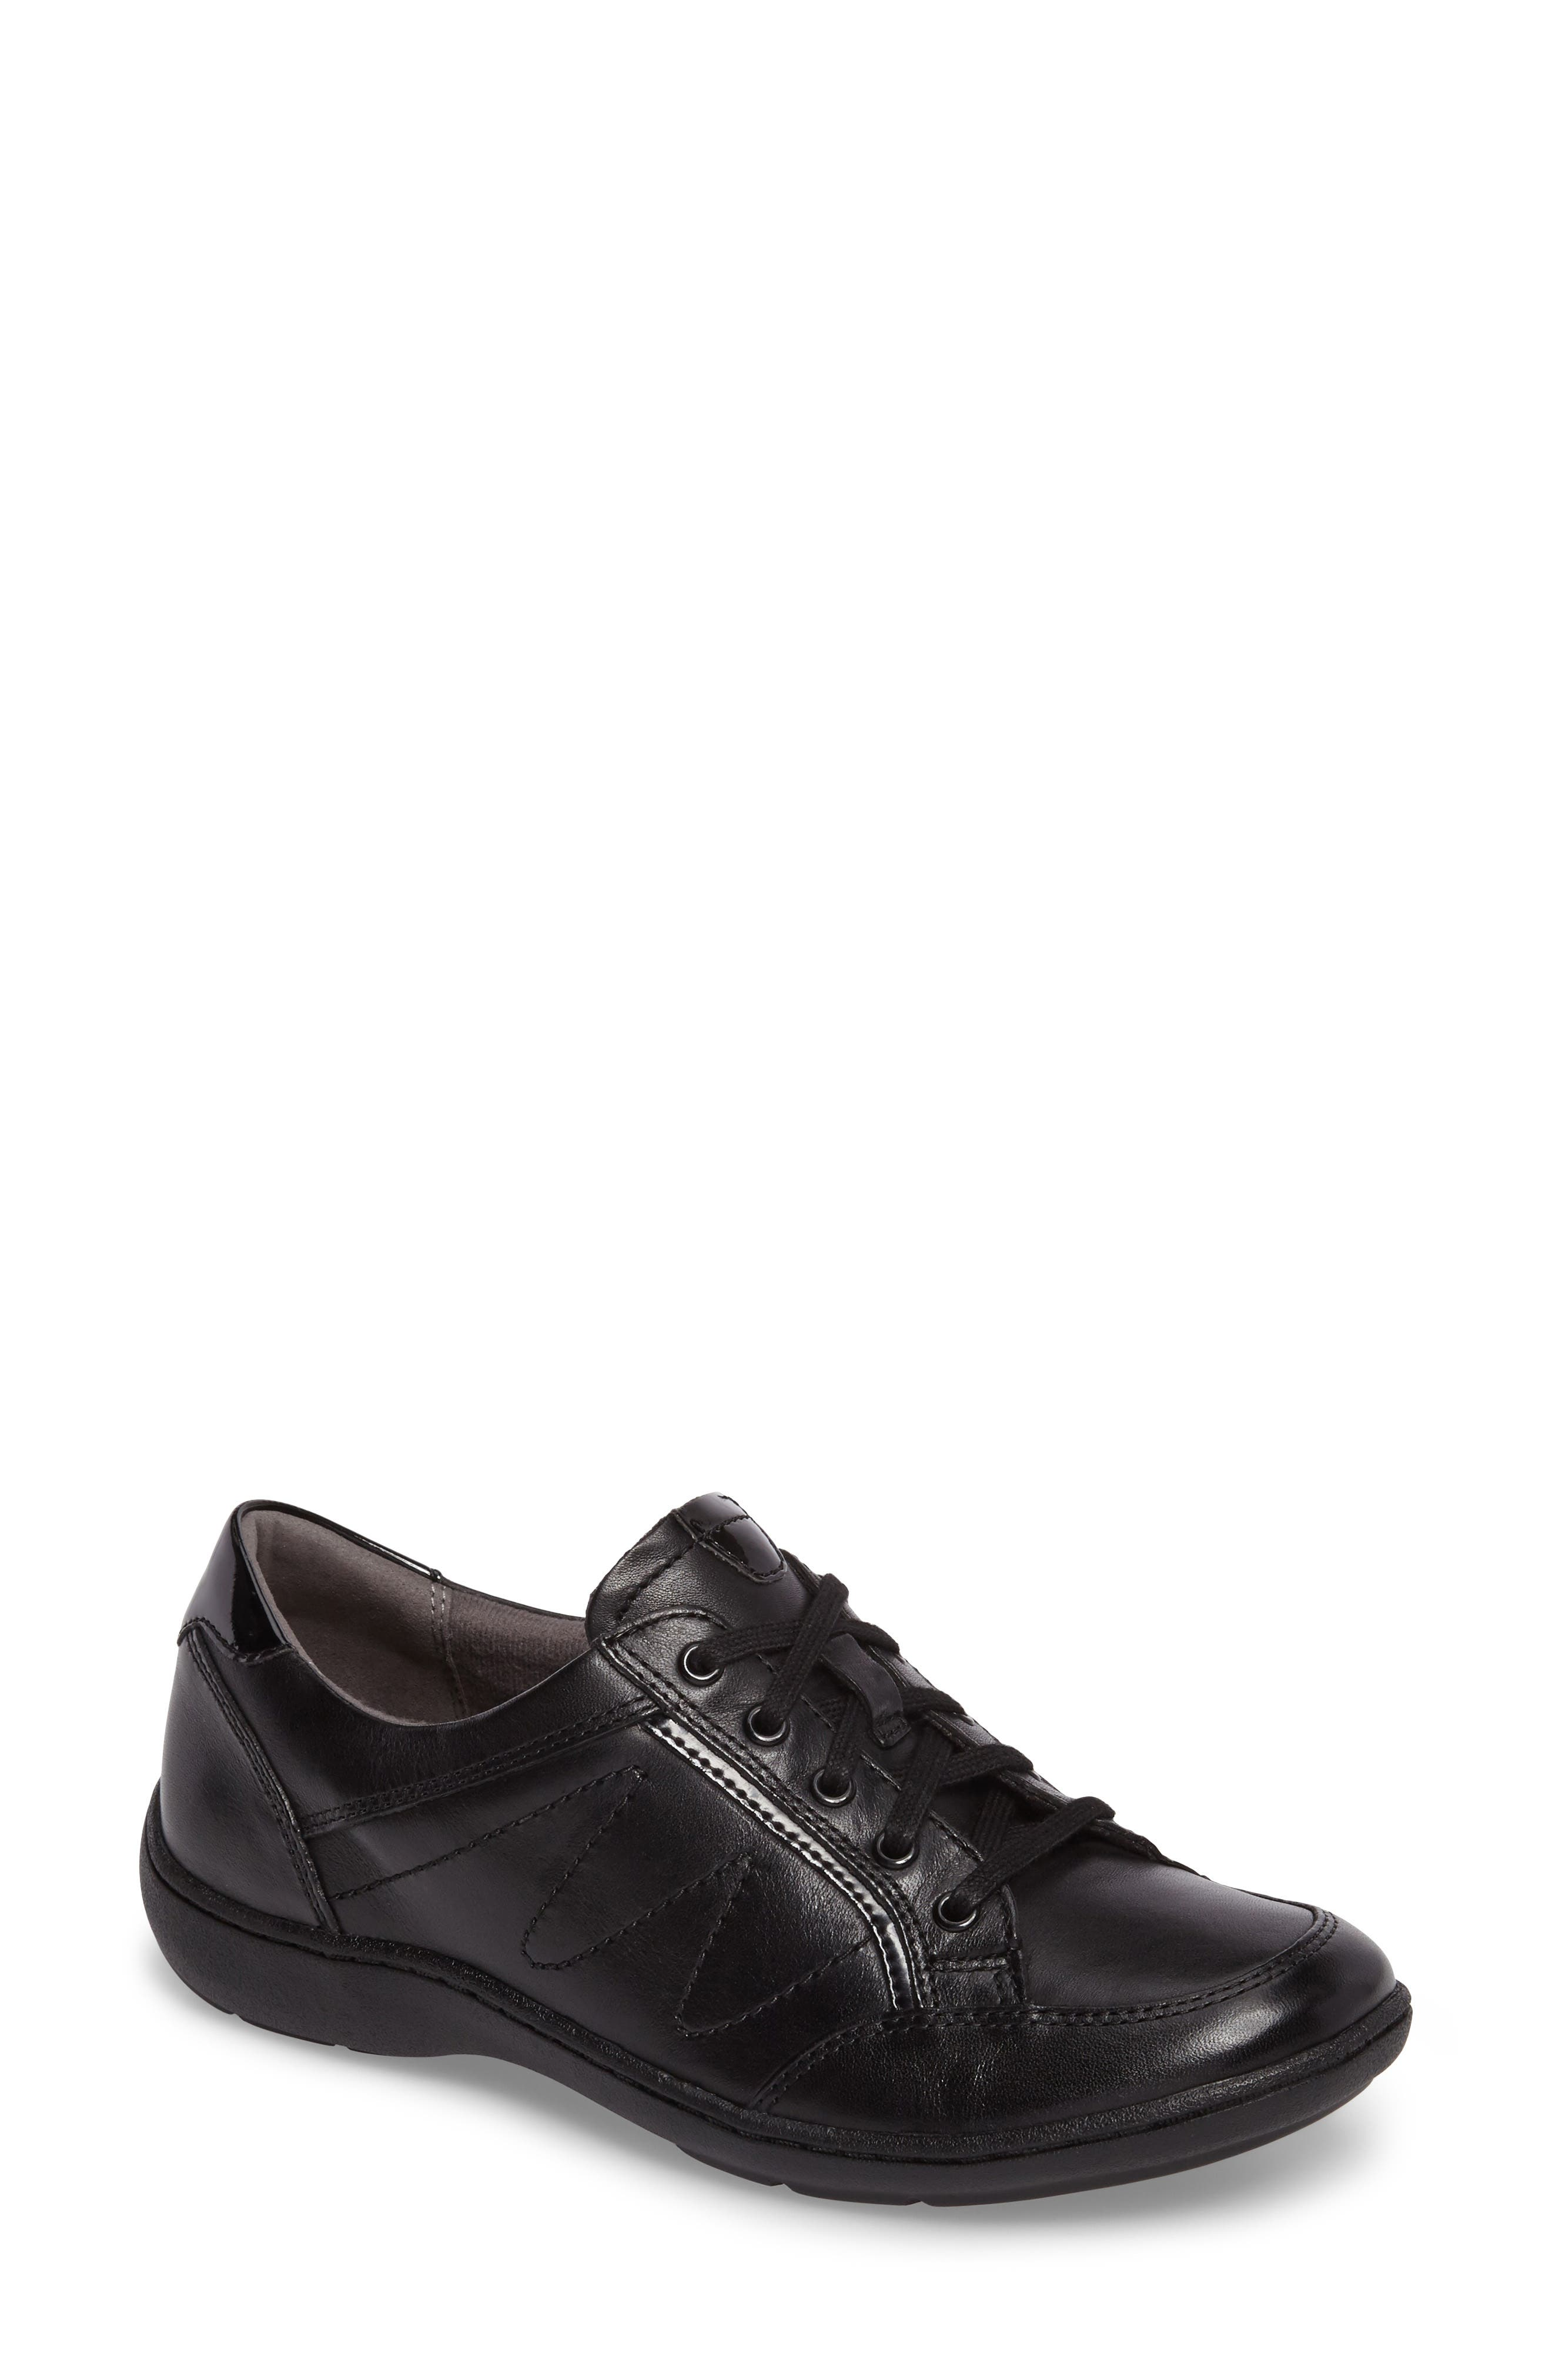 Bromly Sneaker,                         Main,                         color, Black Leather